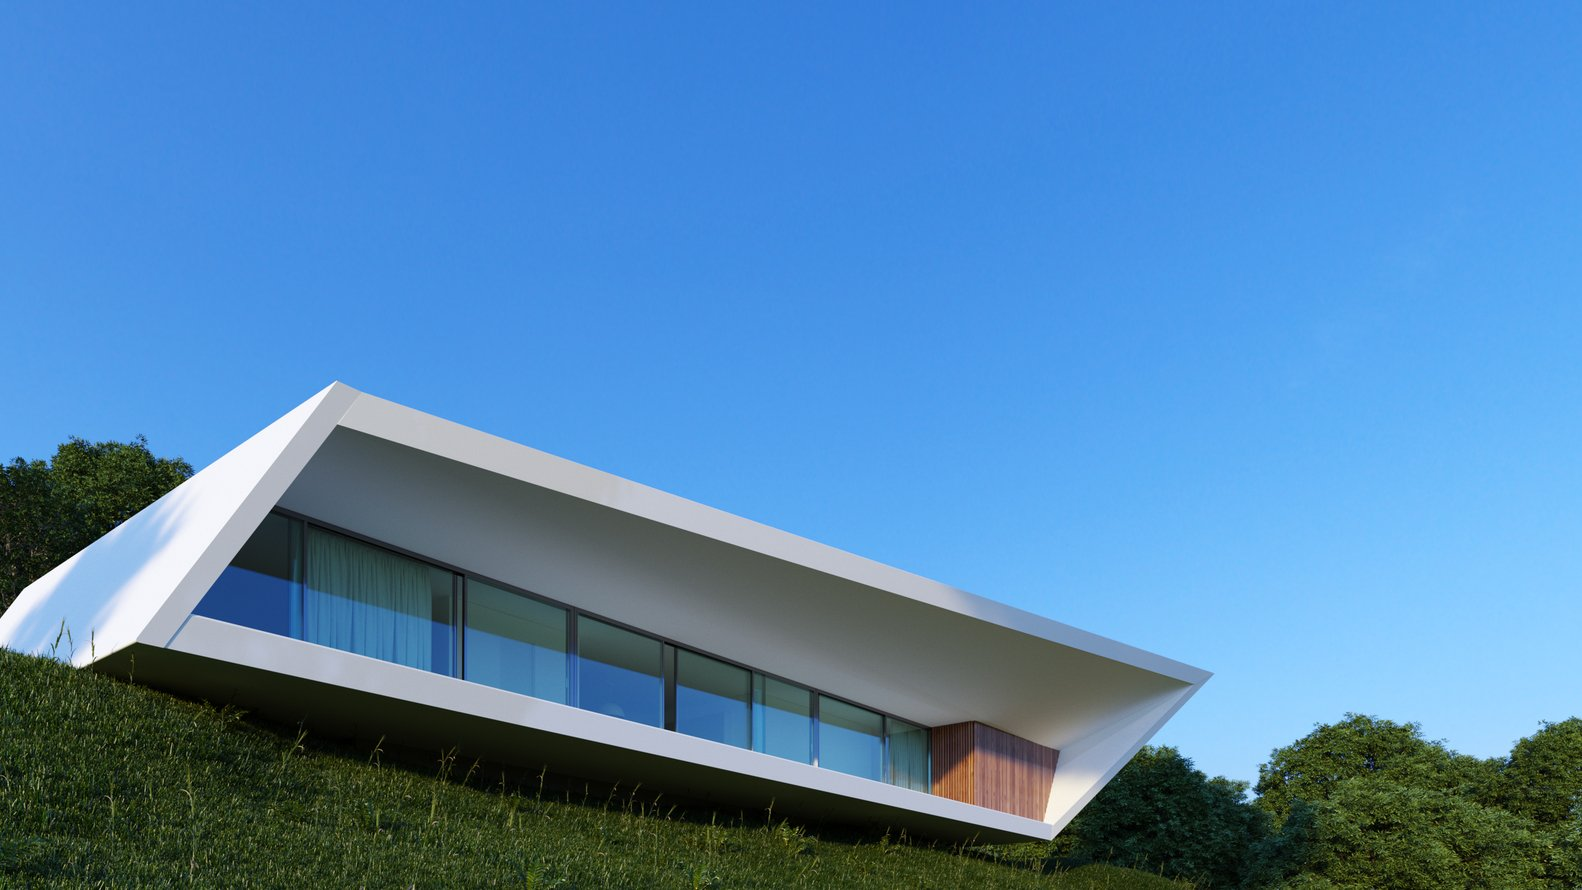 iGNANT_Nravil_Architects_White_Line_1